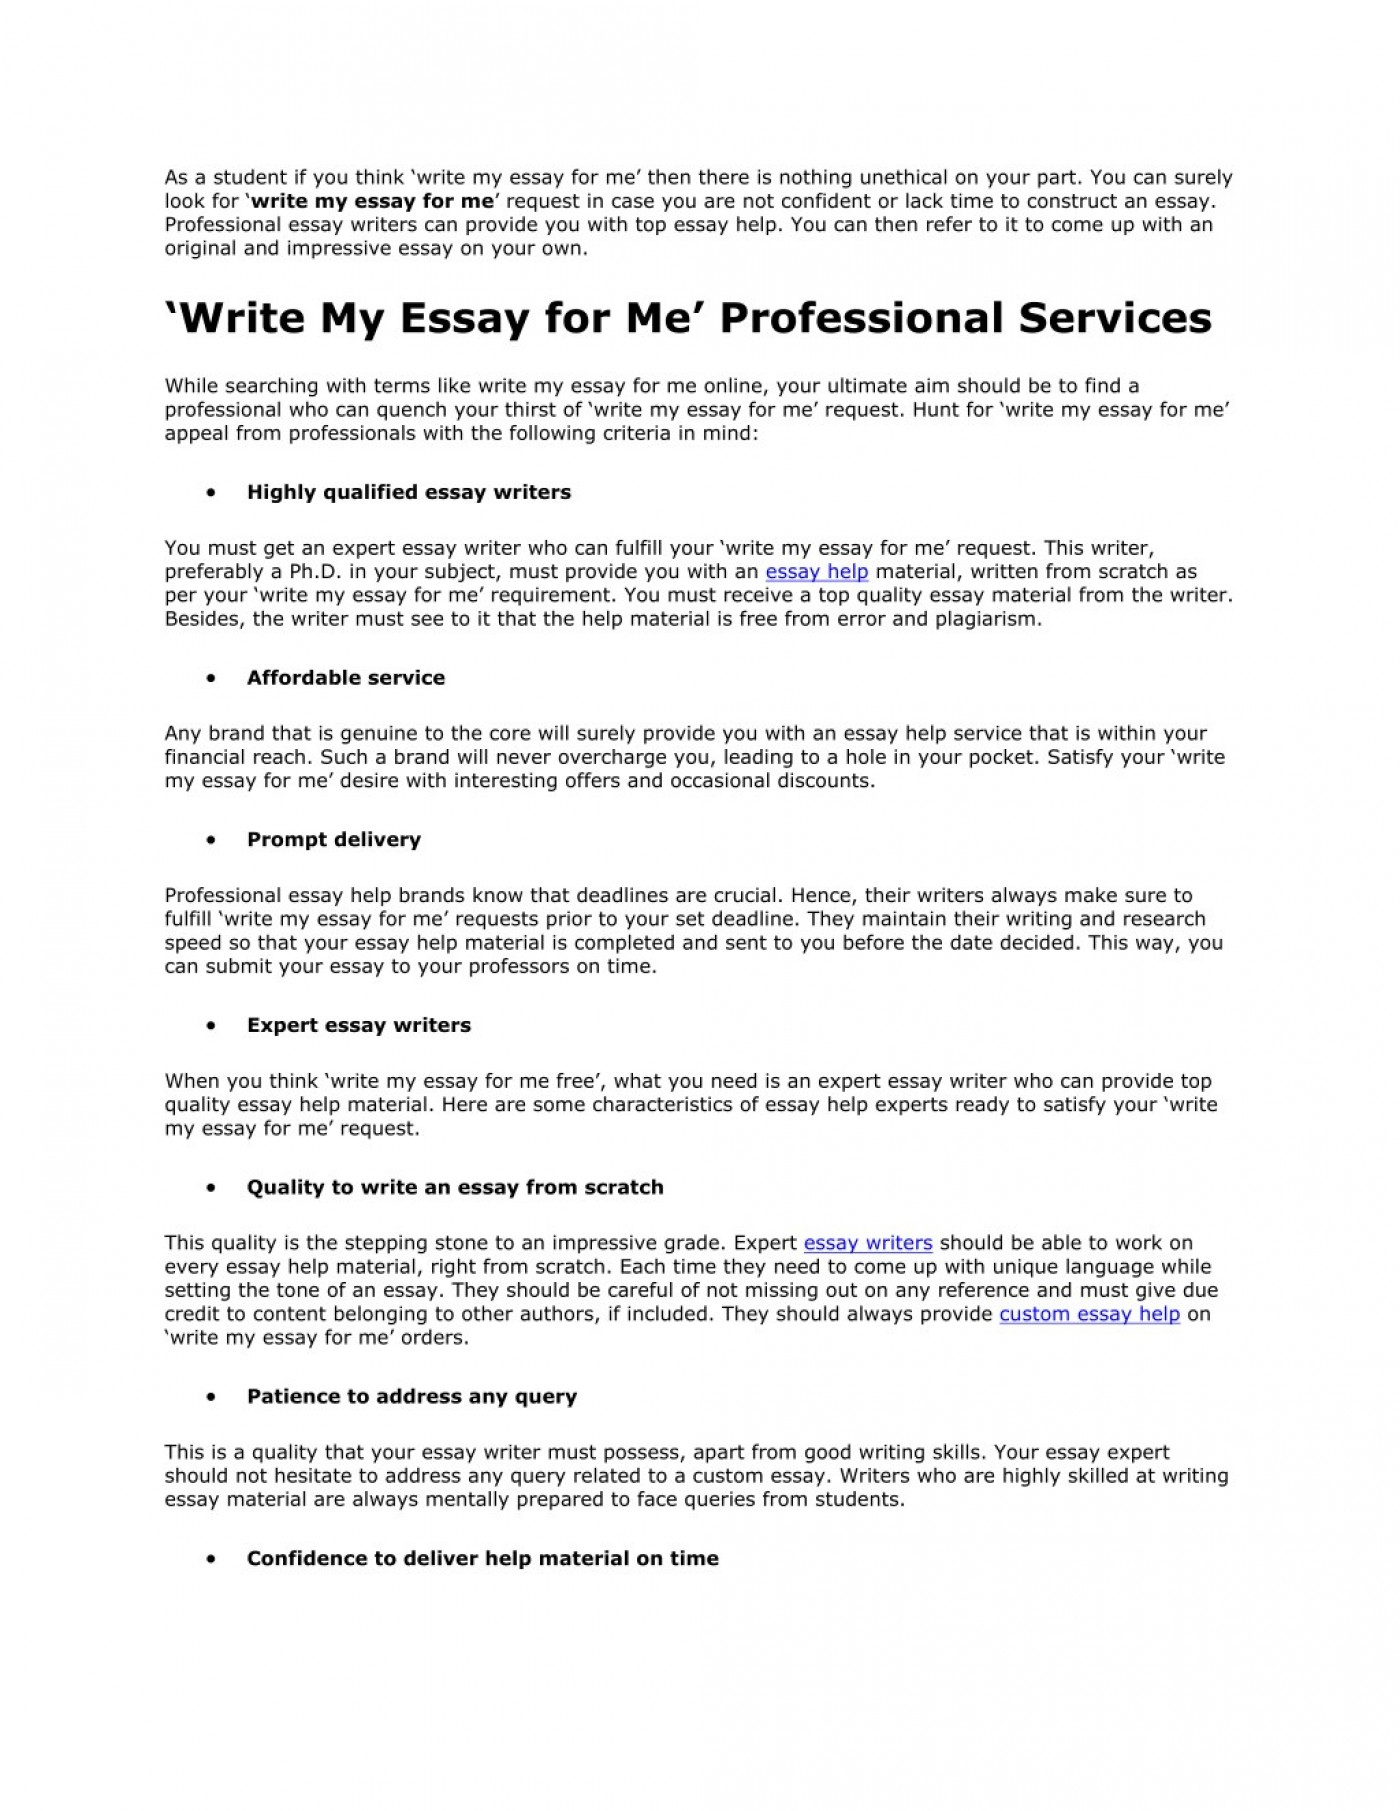 017 Write My Essay For Me Example As Student If You Think Surprising Discount Code Cheap Please 1400